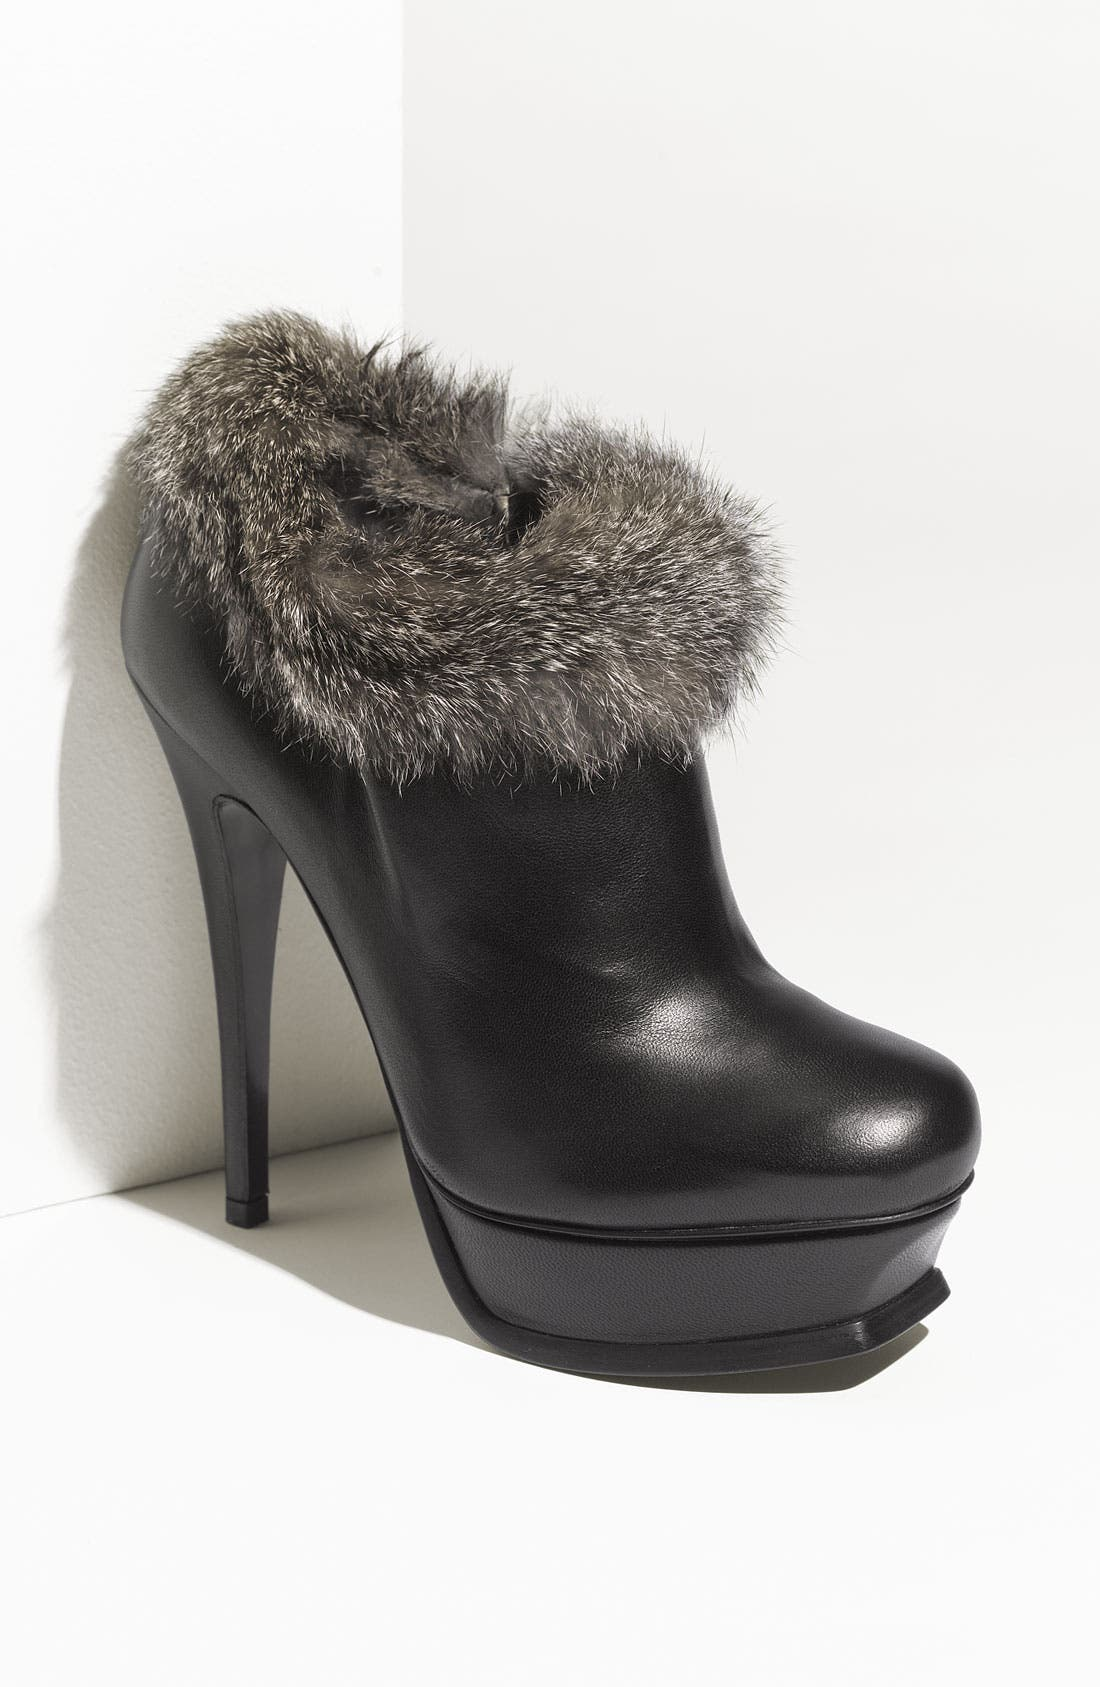 Alternate Image 1 Selected - Yves Saint Laurent 'Tribute' Genuine Rabbit Fur Trim Leather Bootie